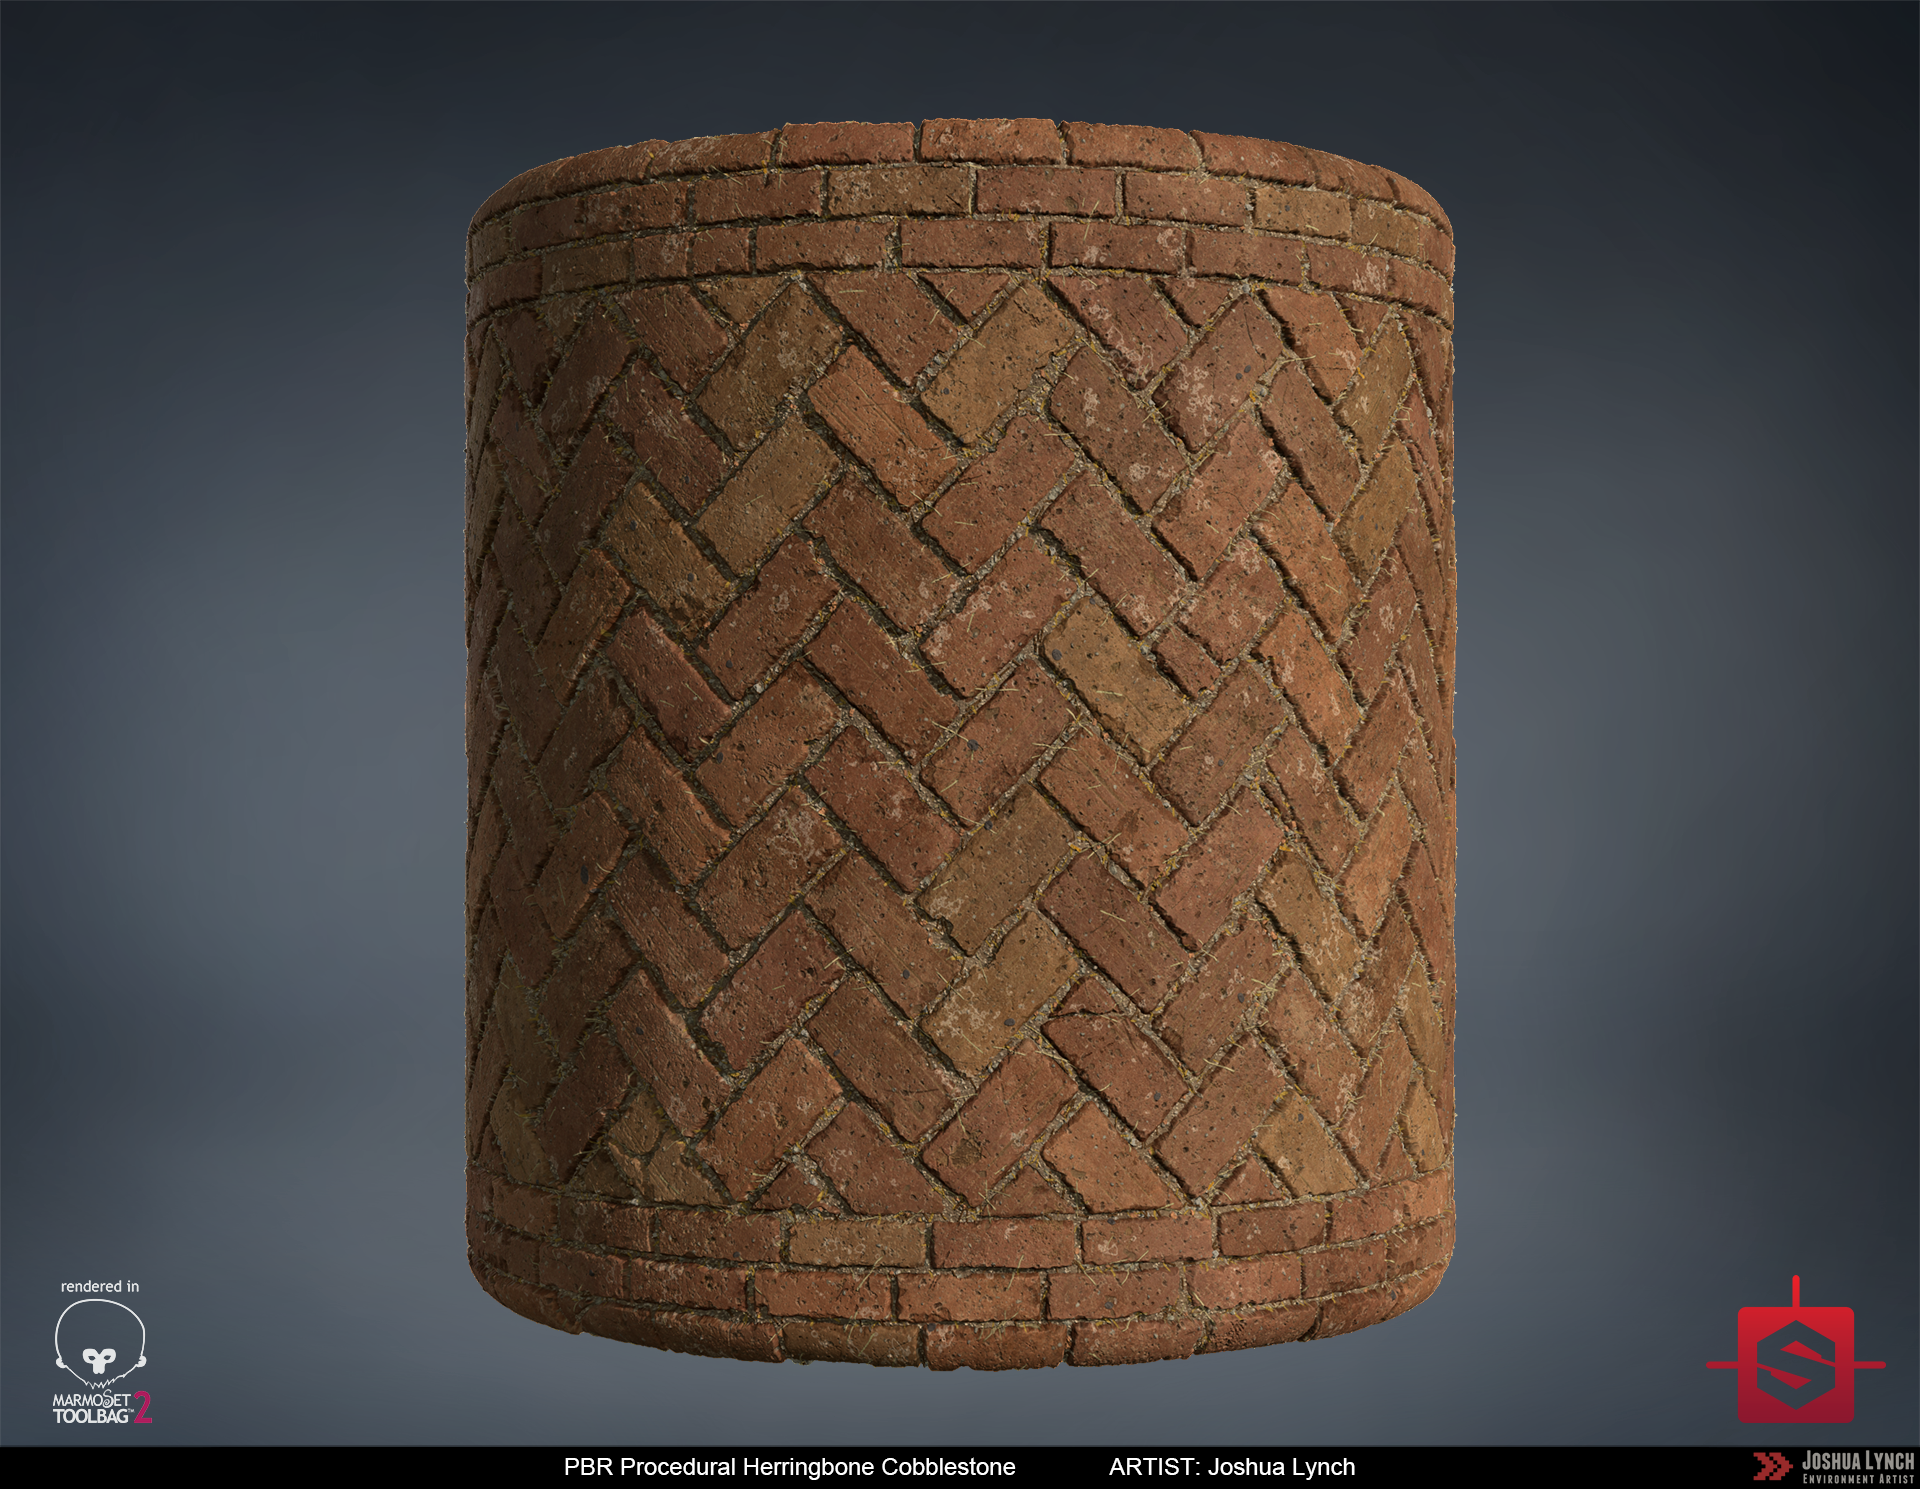 Floor_Cobblestone_Herringbone_Cylinder_Rev_04_Layout_Comp_Josh_Lynch.png